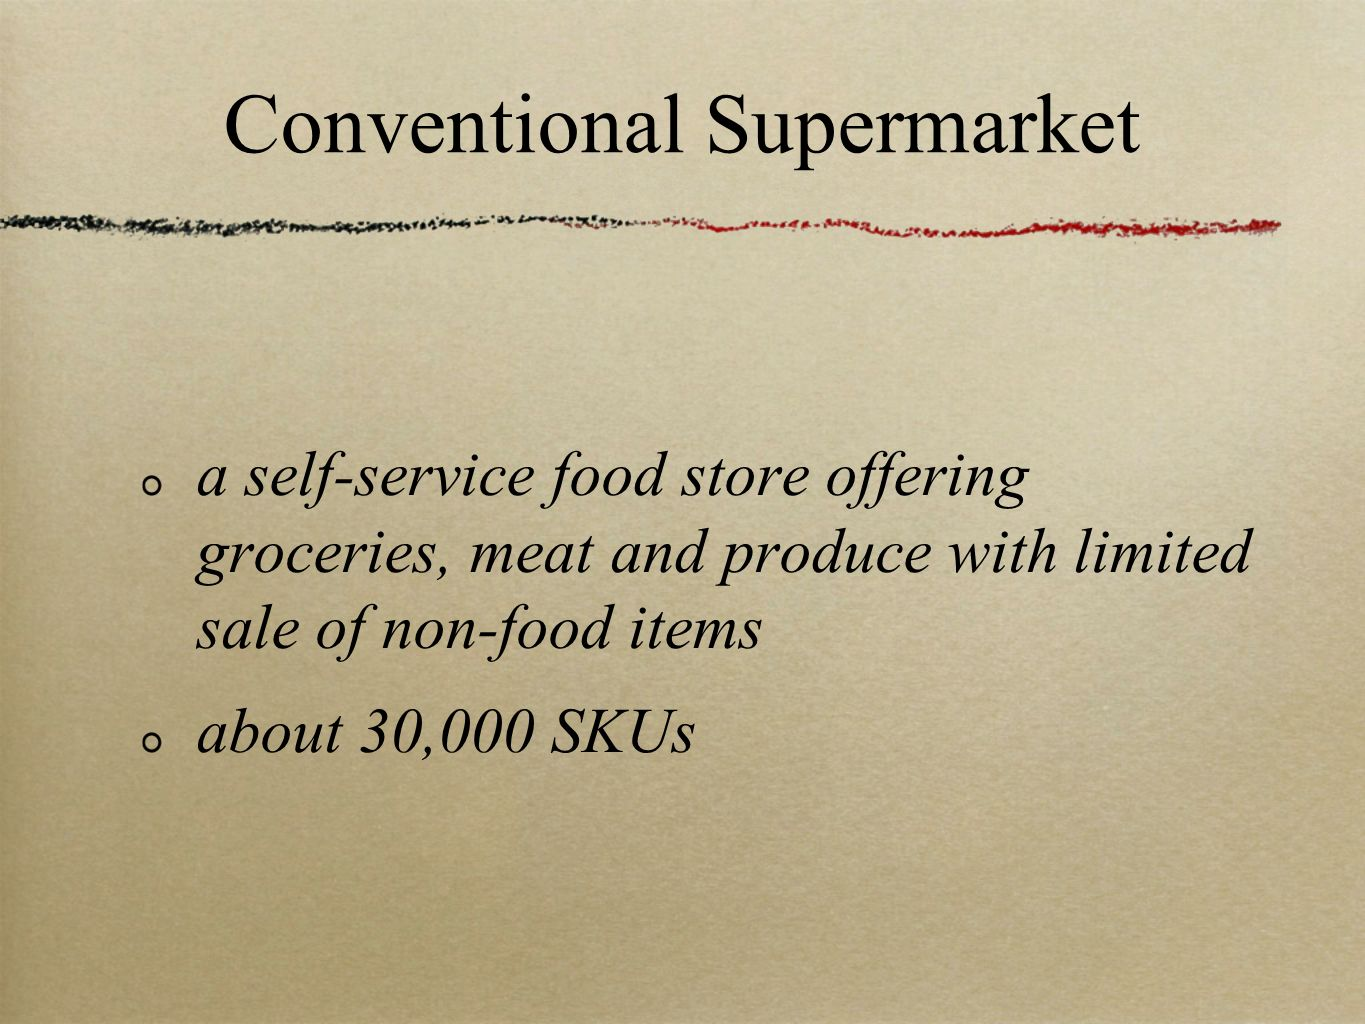 Conventional Supermarket